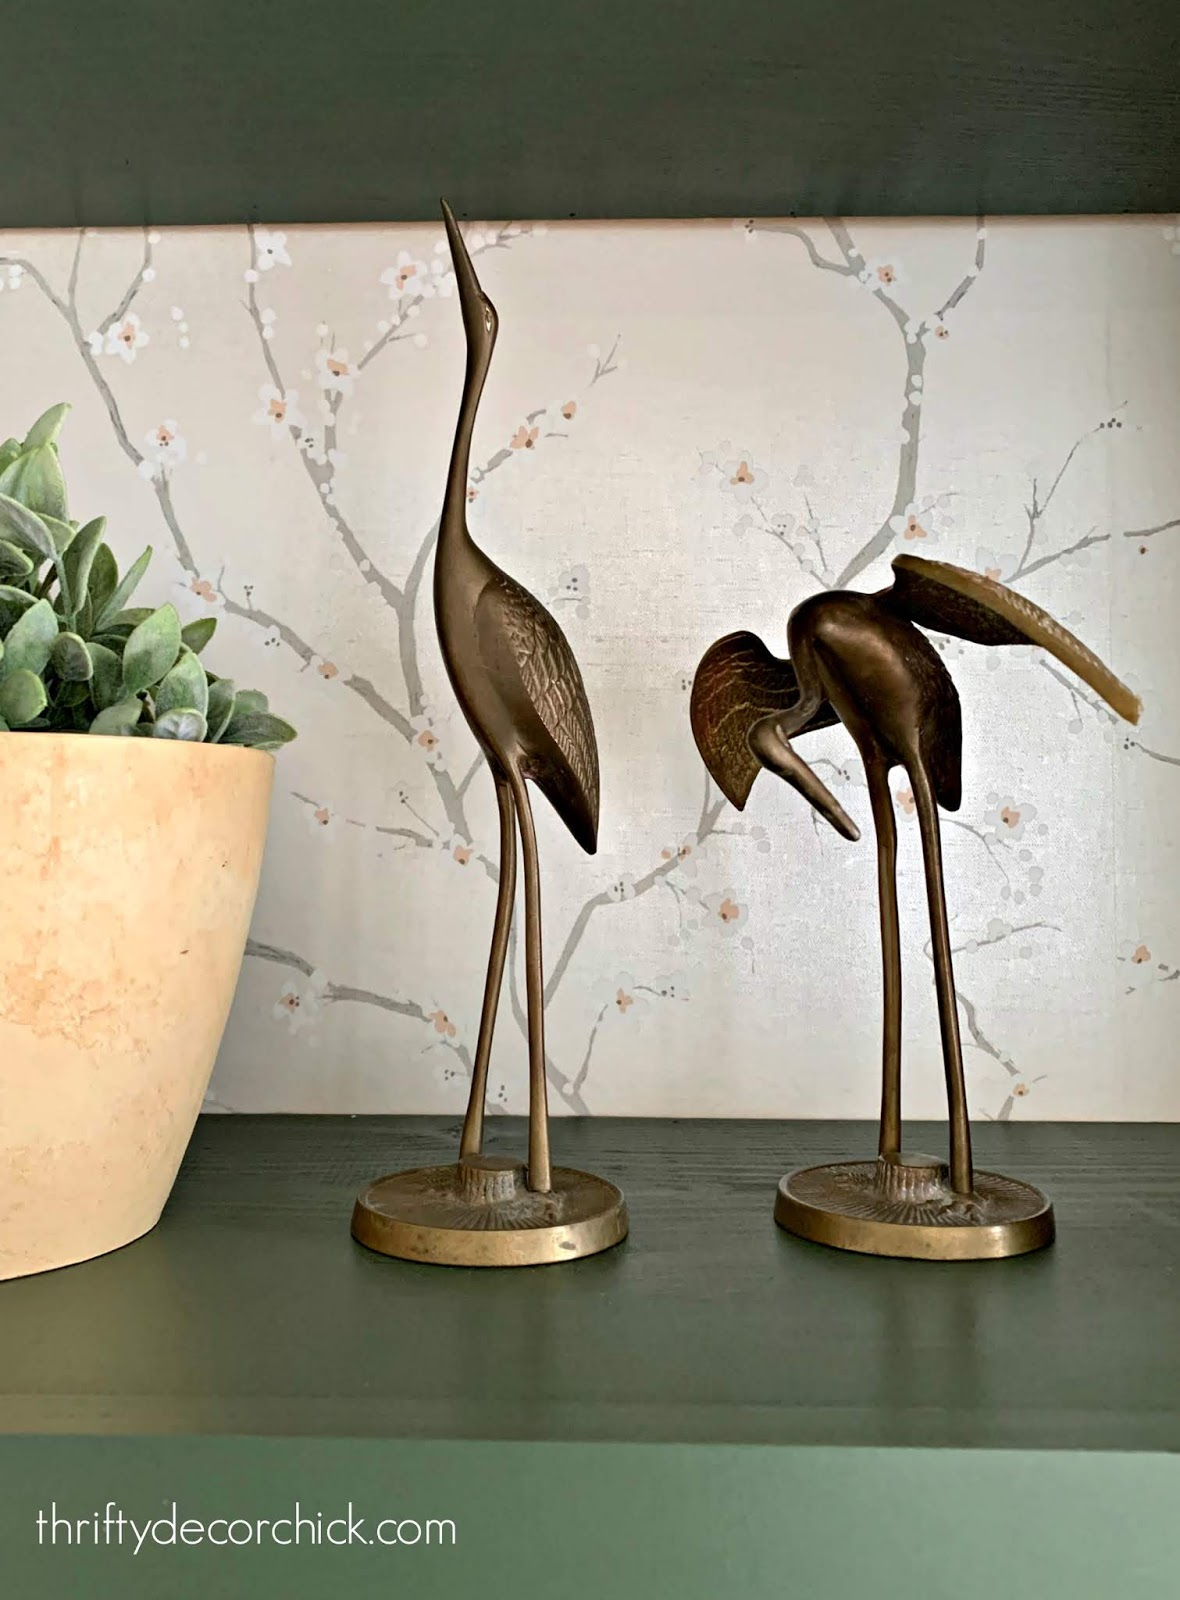 Decorating with brass vintage bird statues